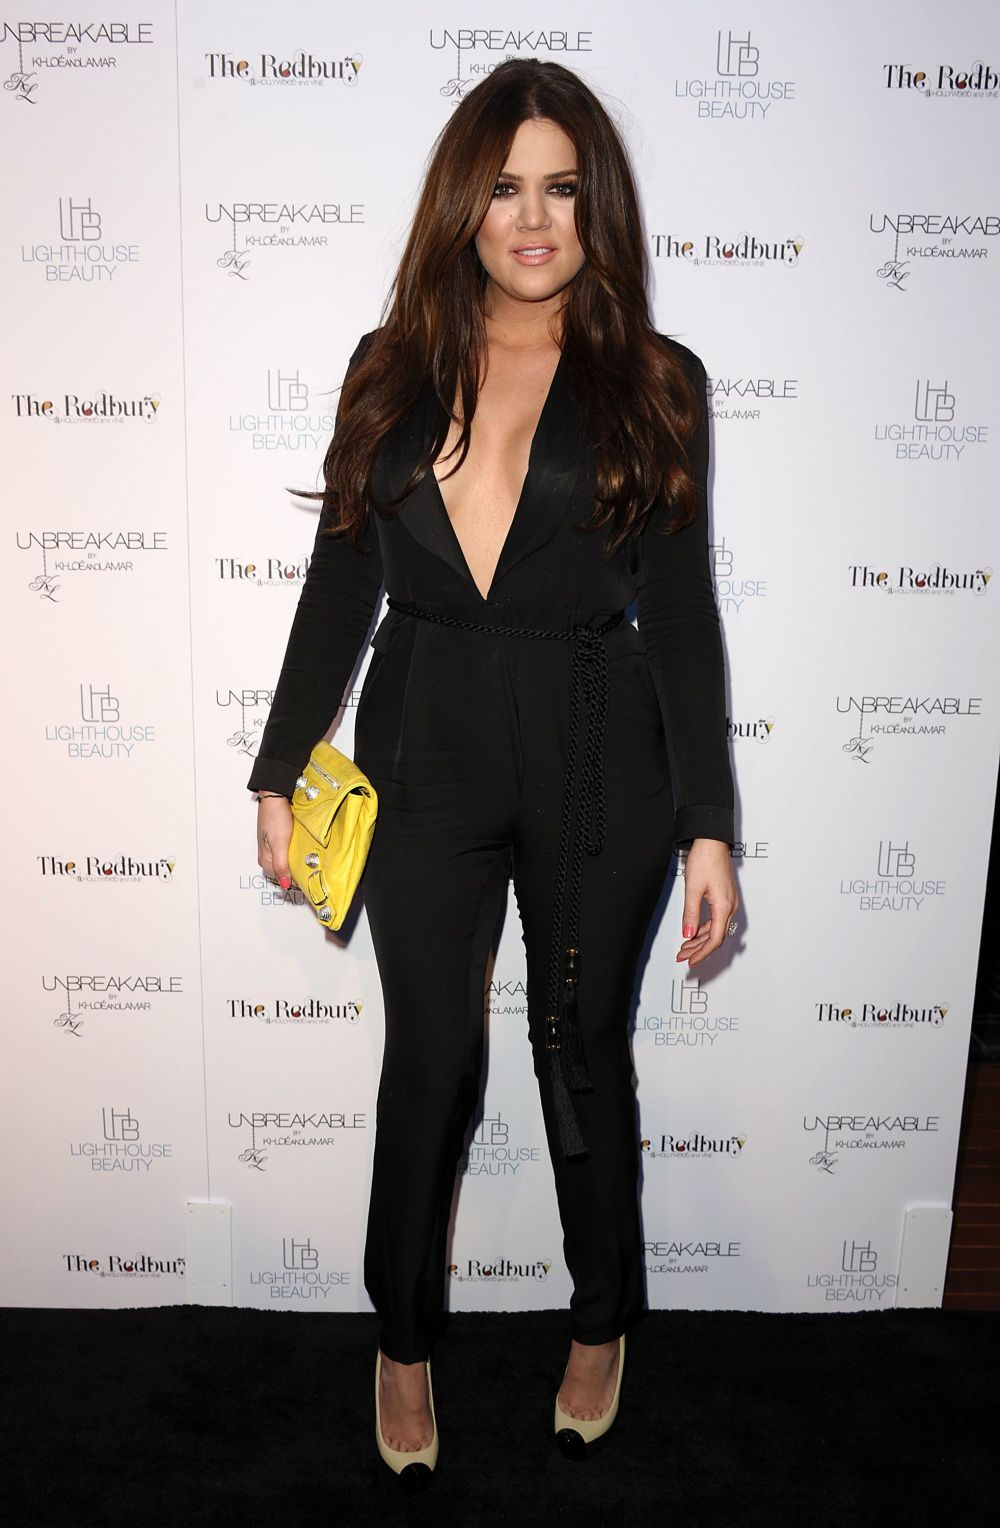 At the launch for Unbreakable by Khloe and Lamar fragrance in Hollywood.